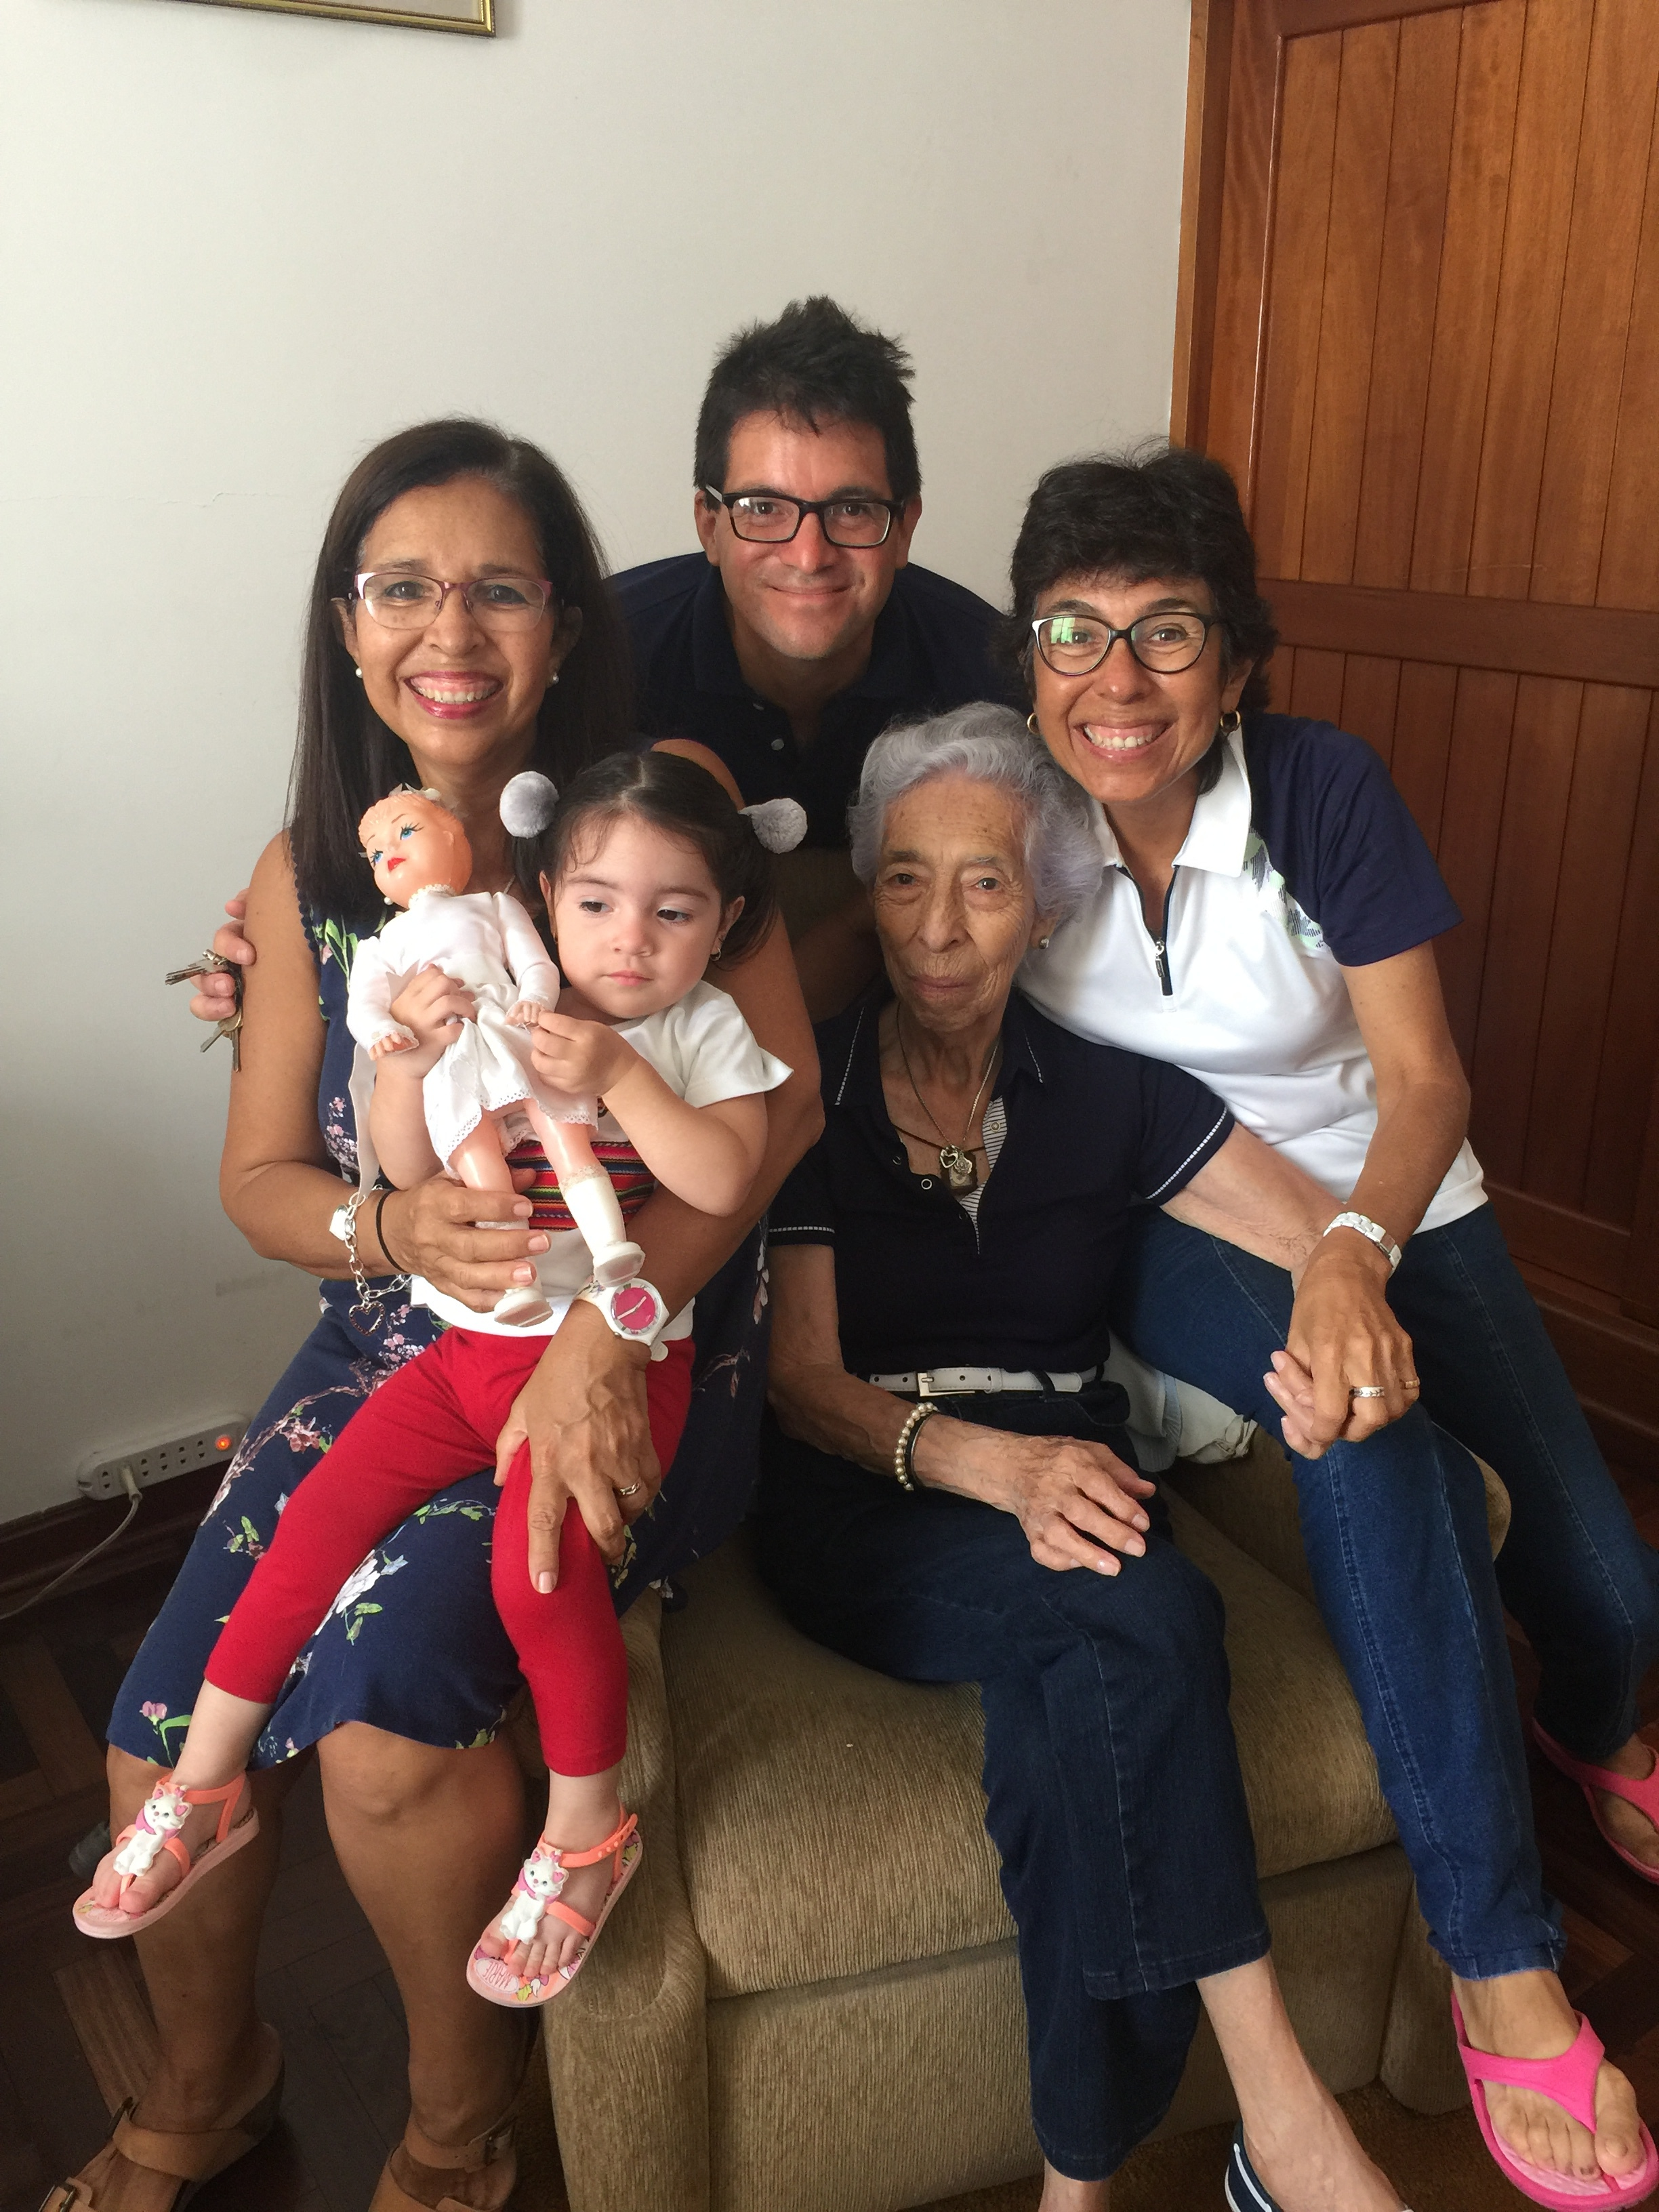 With abuelita Rosita, Tia Camu and Tia Paty, holding one of the many Abuelito Alberto Doll Toys